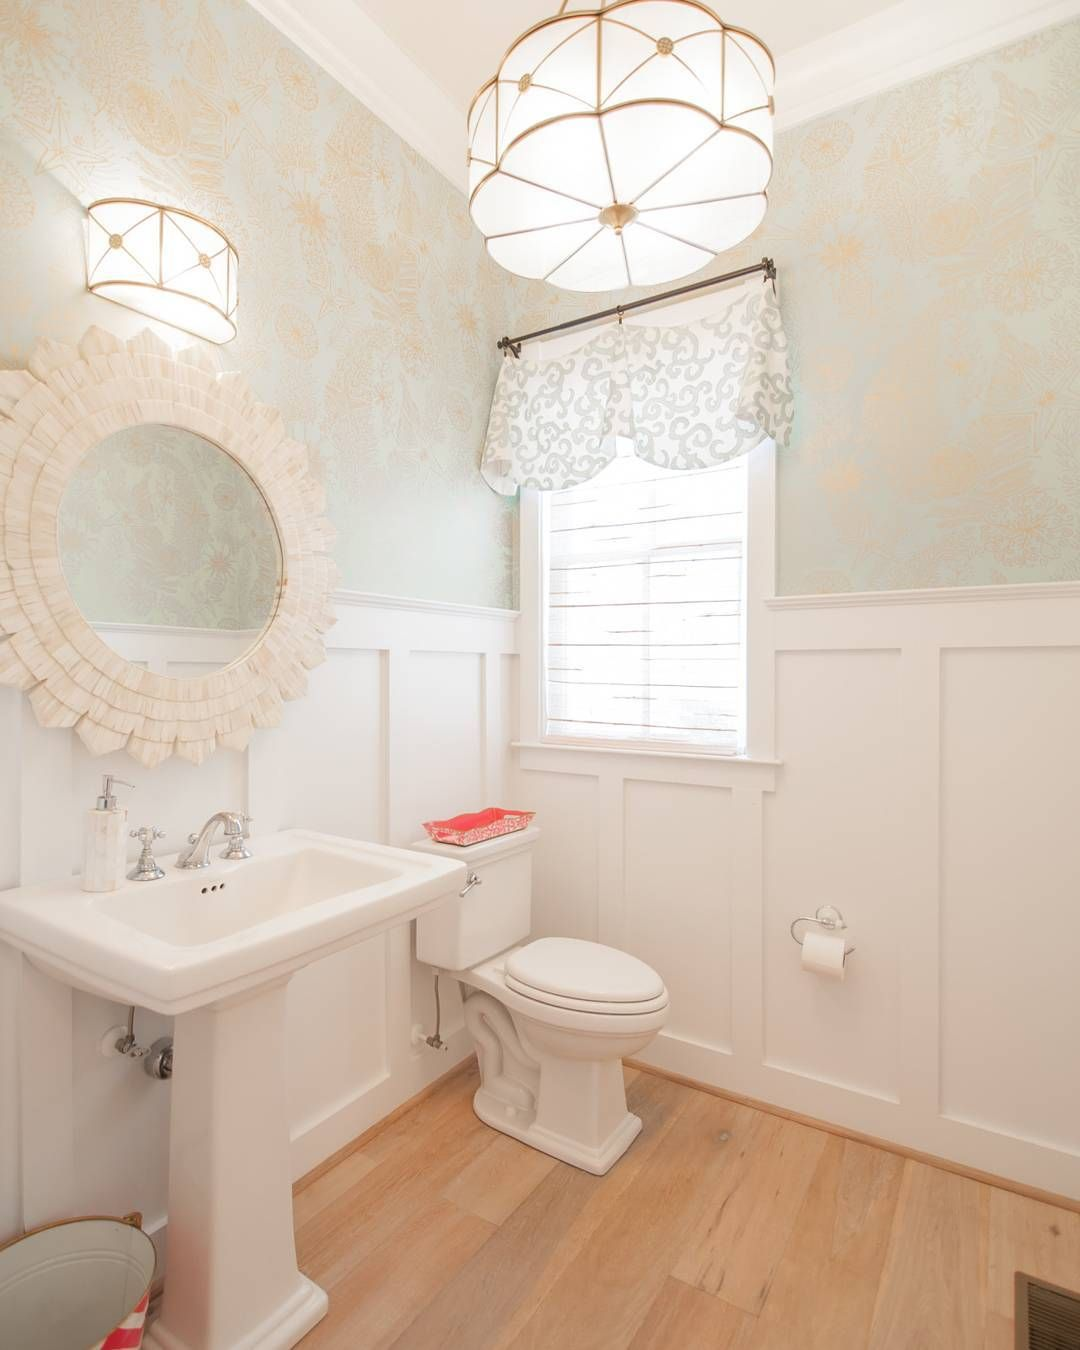 This powder room features a subtle combination of #boardandbatten #wainscotting and wallpaper. Wide plank floors brings warmth while stunning lighting adds some glamour to this space. #whatsnottolove See more #pics and #sources on the #blog #today homebunch.com Design by Strickland Homes.  #interiordesignblog #Interiordesigner #interiors #interiordesign #beautifulhomes #homes #homeideas #whotofollow #follow #turquoise #beachhouse #coastalinteriors #justnow #newpic #houses